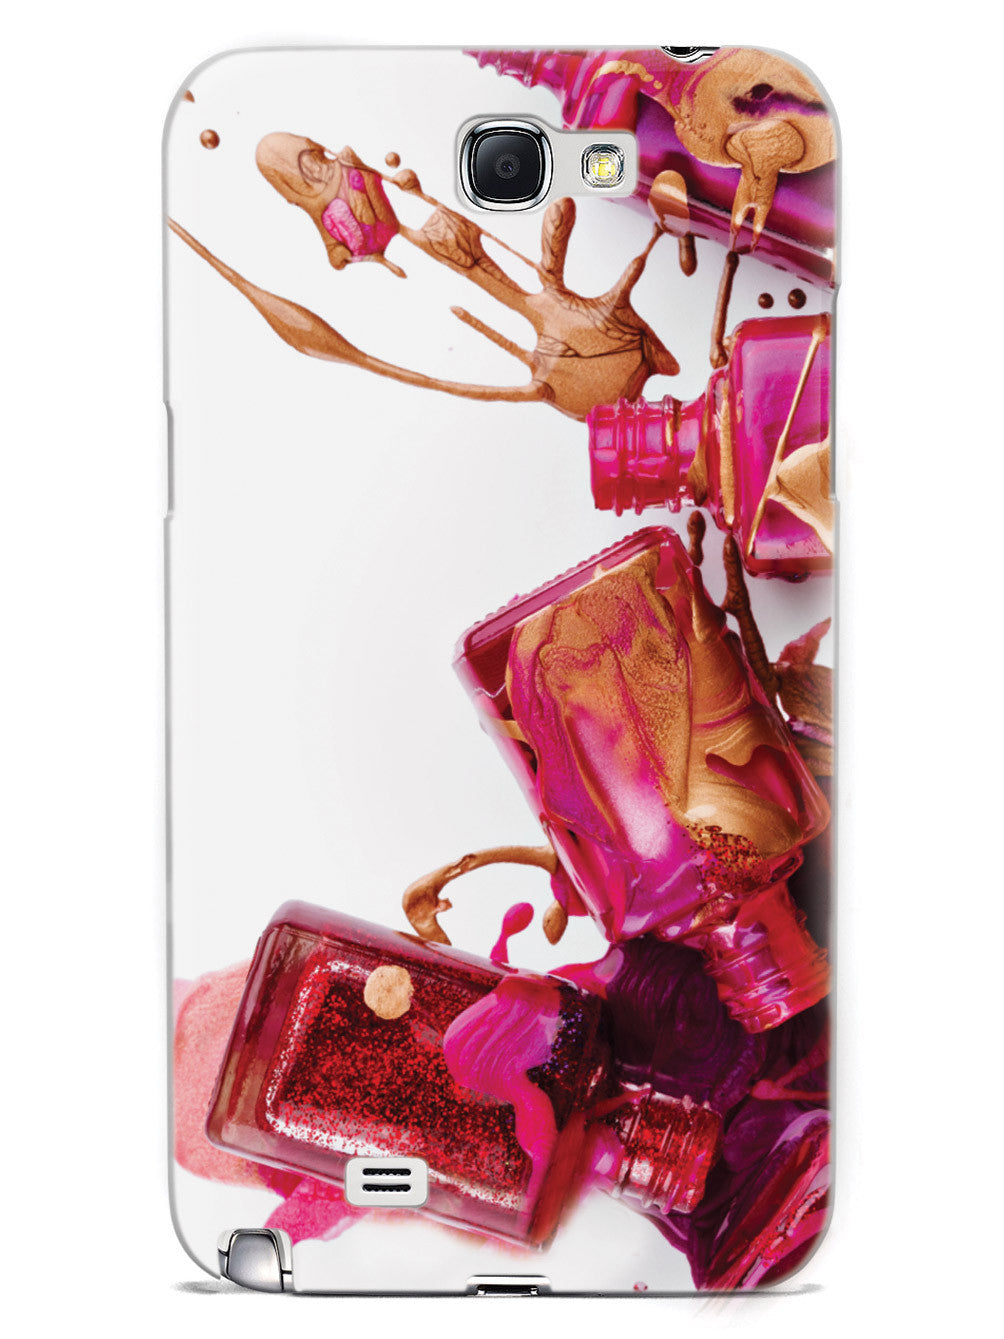 Nail Polish Splash Case